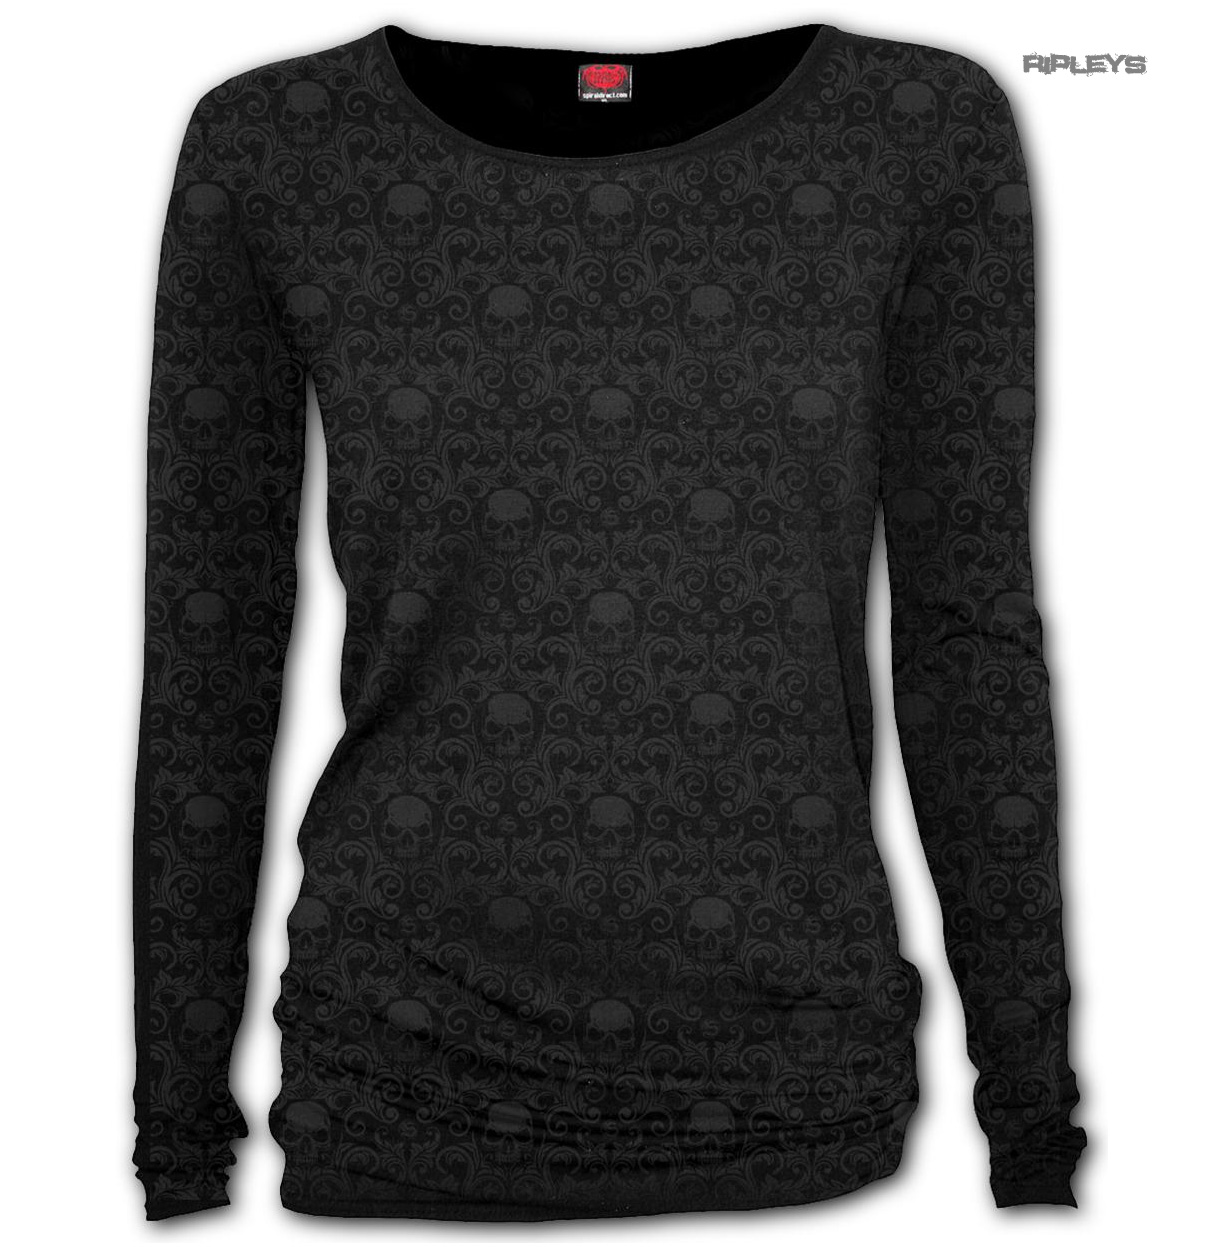 Spiral-Gothic-Elegance-Ladies-Blk-Goth-Scroll-IMPRESSION-L-Sleeve-Top-All-Sizes thumbnail 10